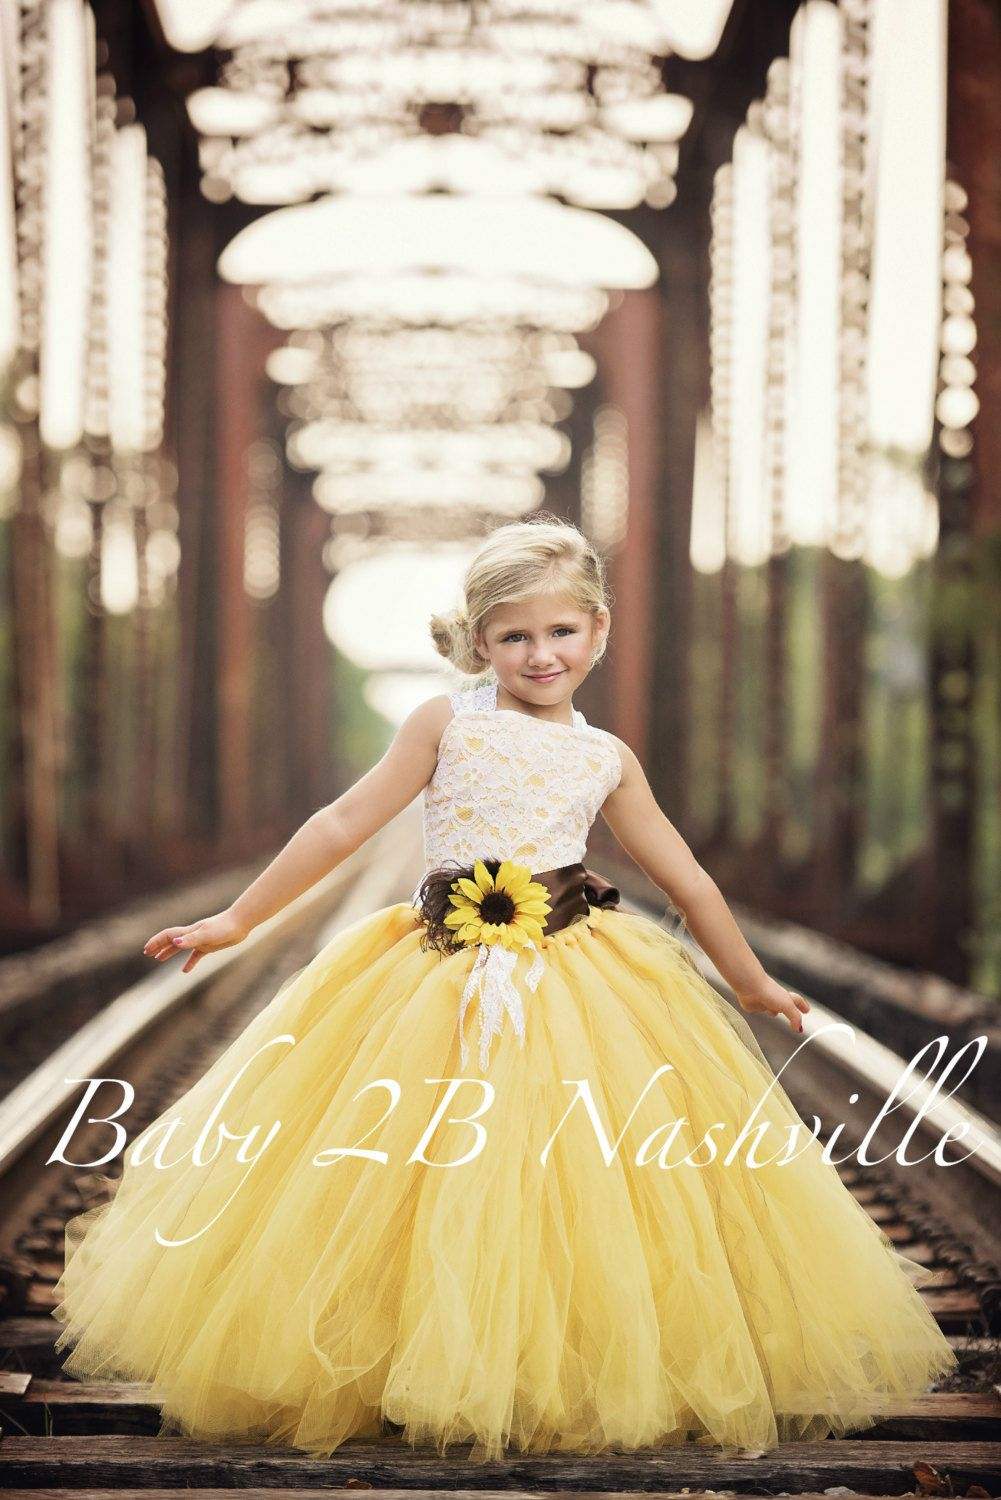 8da2efda890f Sunflower Dress Yellow Dress Flower Girl Dress Lace Dress Summer Dress Baby  Dress Toddler Dress Girls Dress Imagine your little princess twirling and  ...